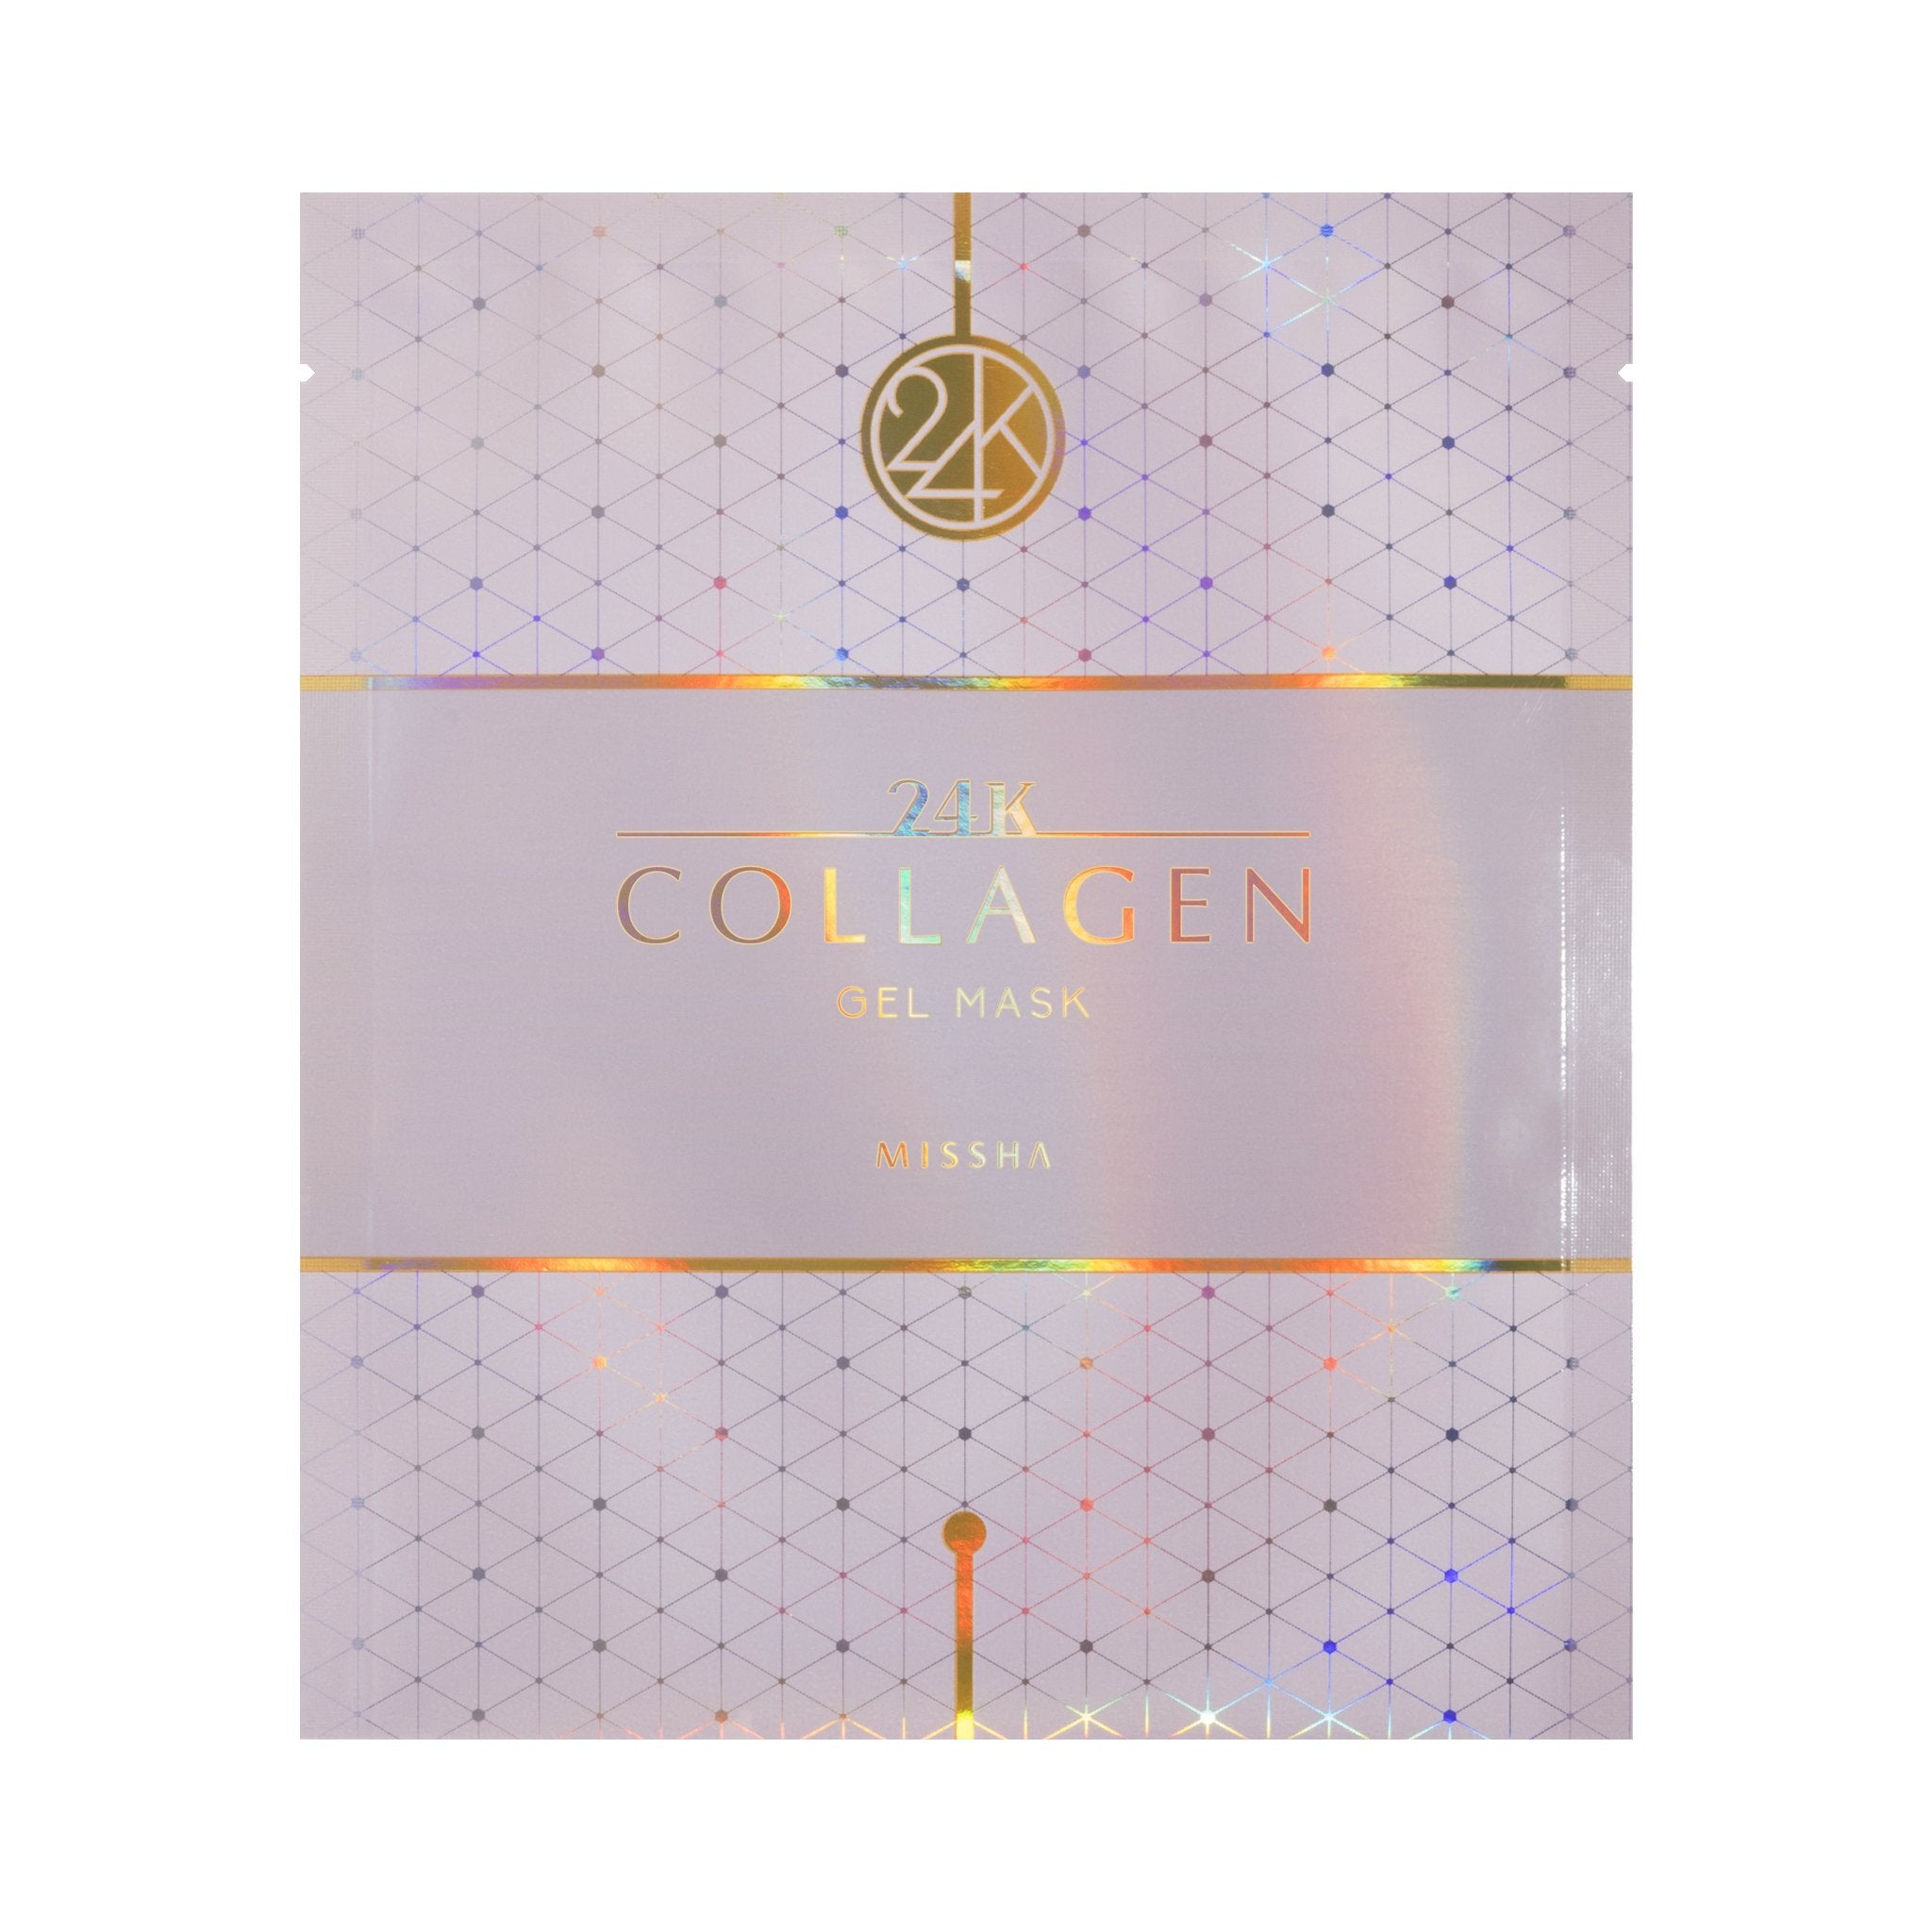 24K COLLAGEN GEL MASK - MISSHA